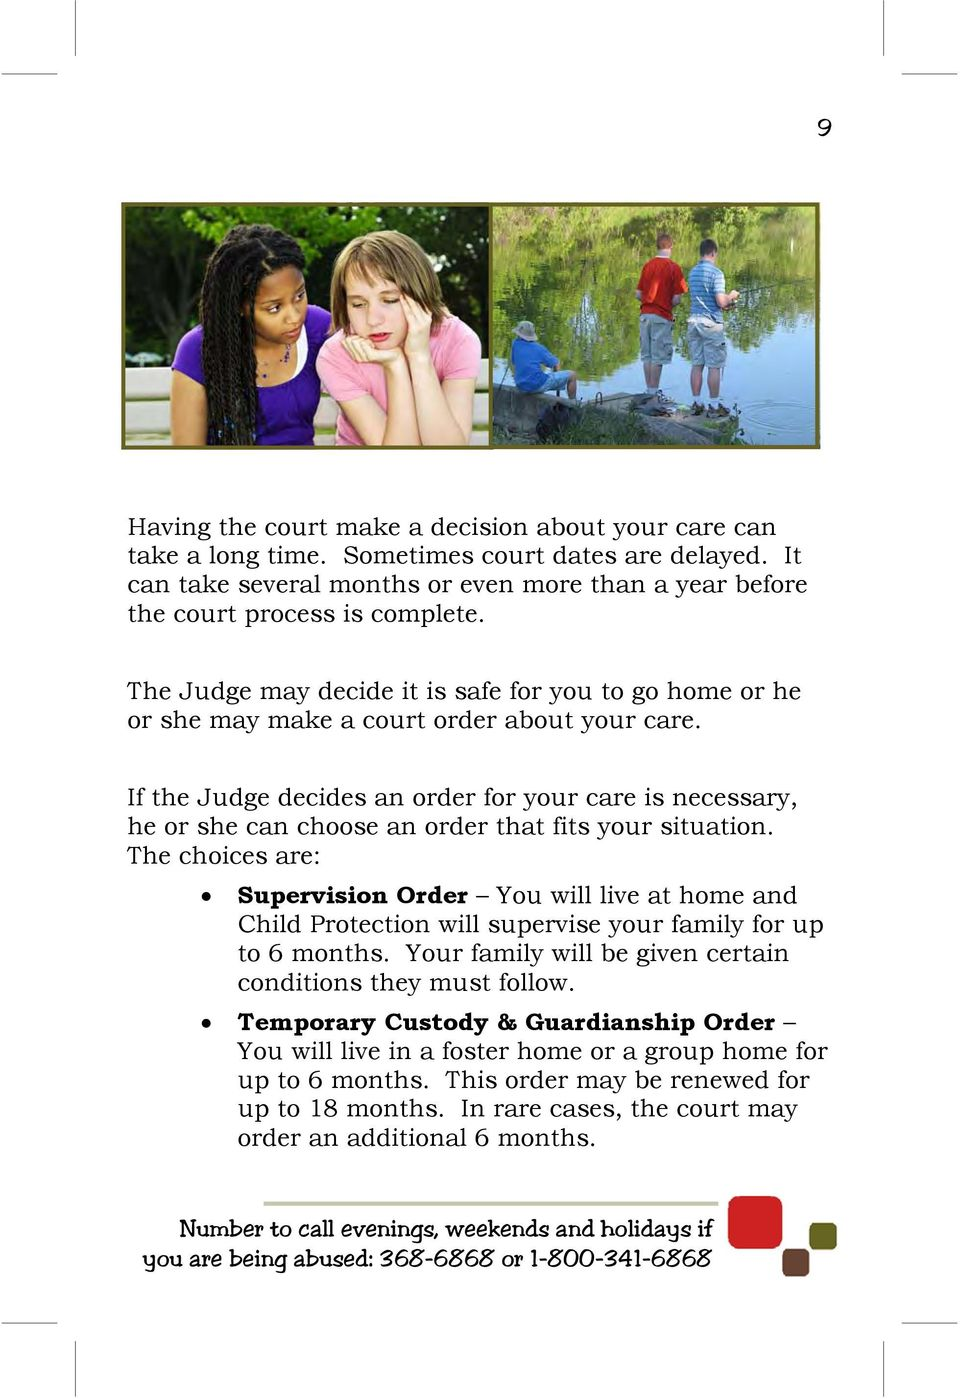 If the Judge decides an order for your care is necessary, he or she can choose an order that fits your situation.